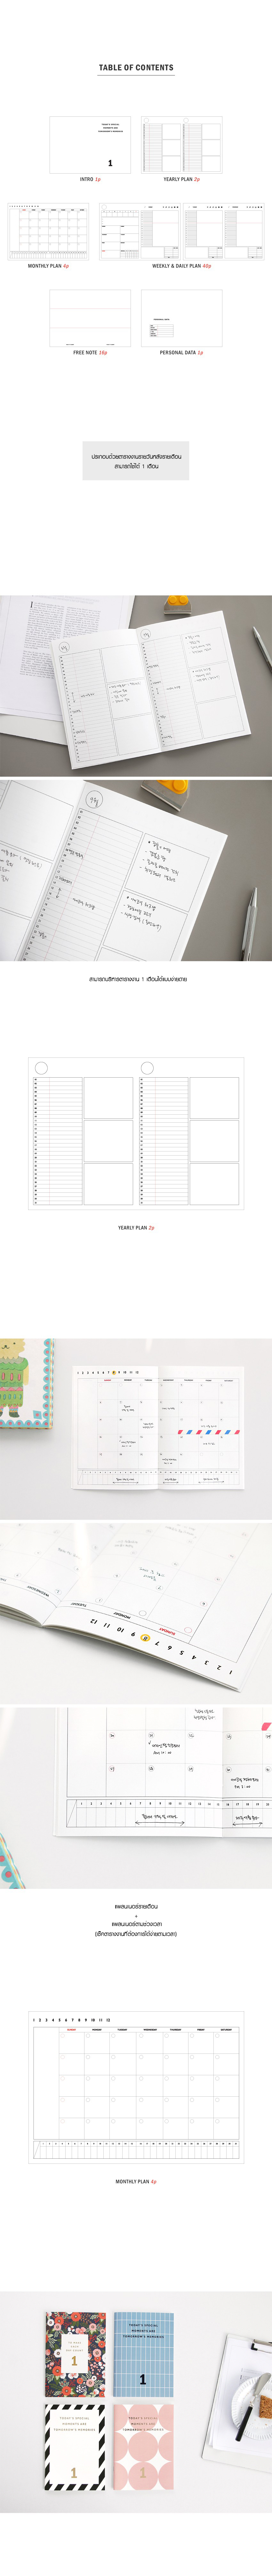 becoming-planner-1-month-3.jpg